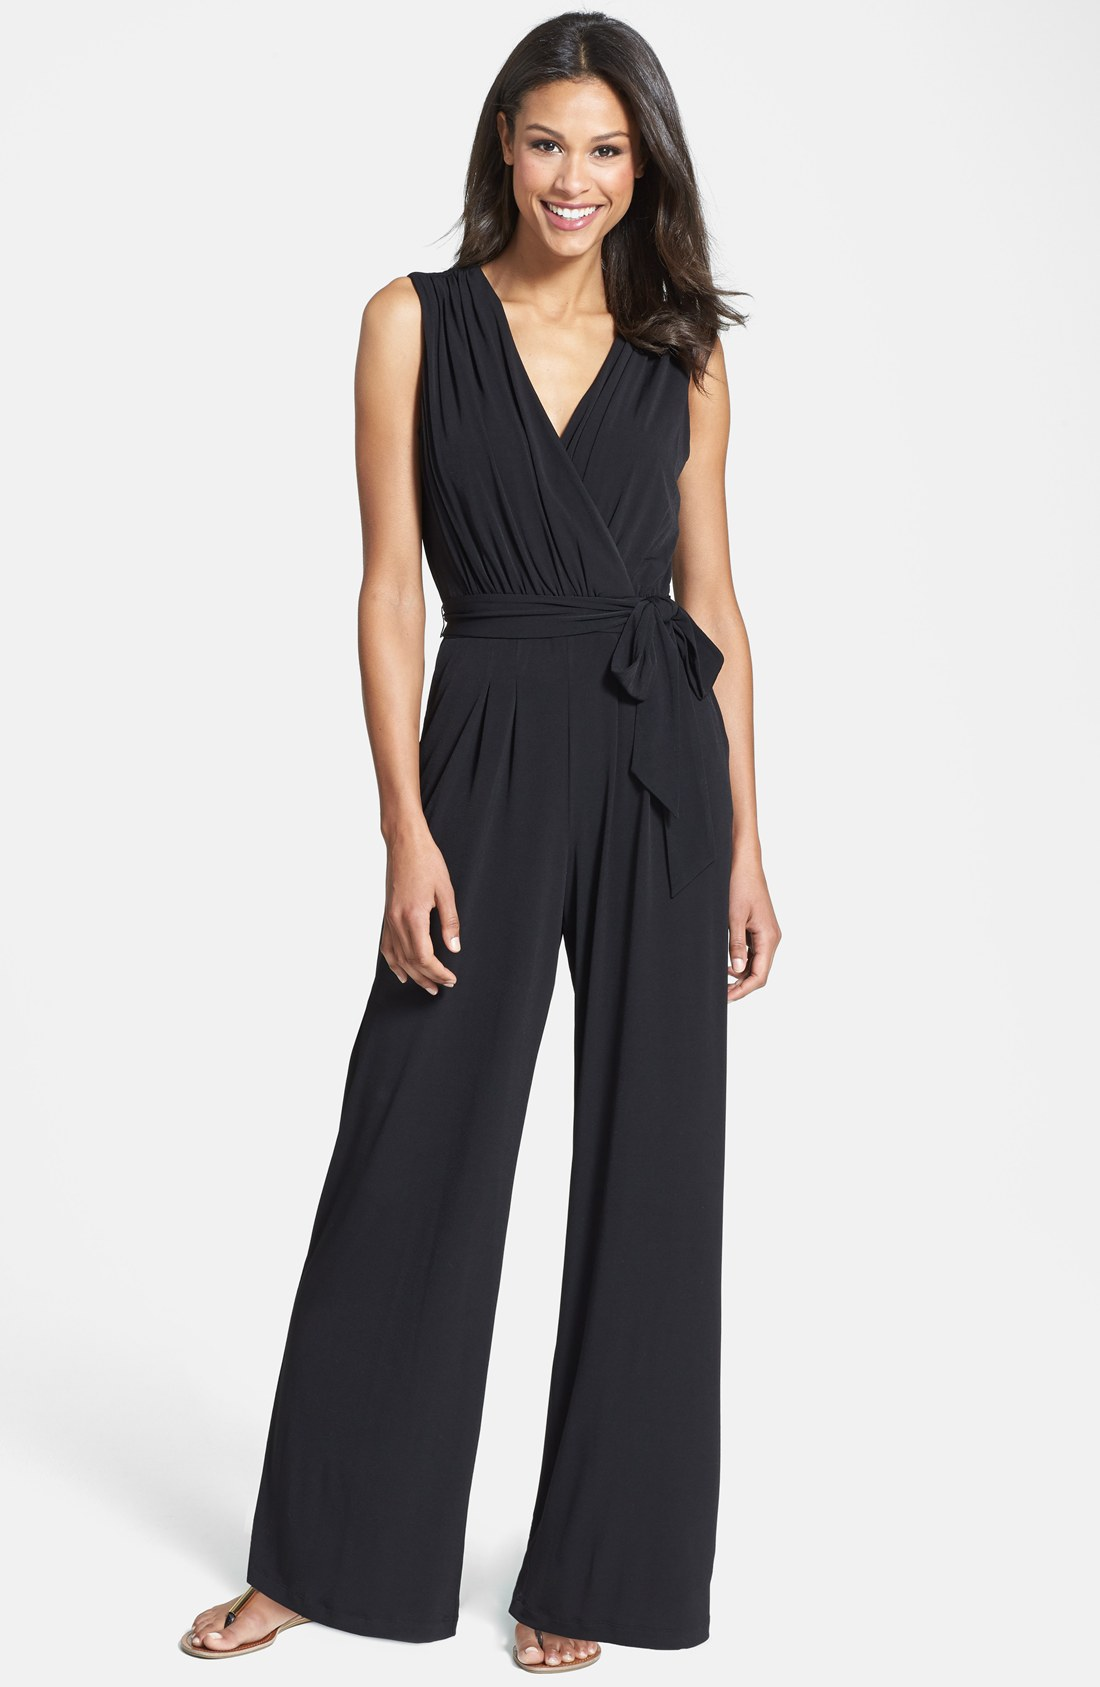 Shop for jumpsuits and rompers for women at 10mins.ml Find a wide range of women's jumpsuit and romper styles from top brands. Free shipping and returns. Skip navigation. Give the card that gives! We donate 1% of all Gift Card sales to local nonprofits. Shop Gift Cards.